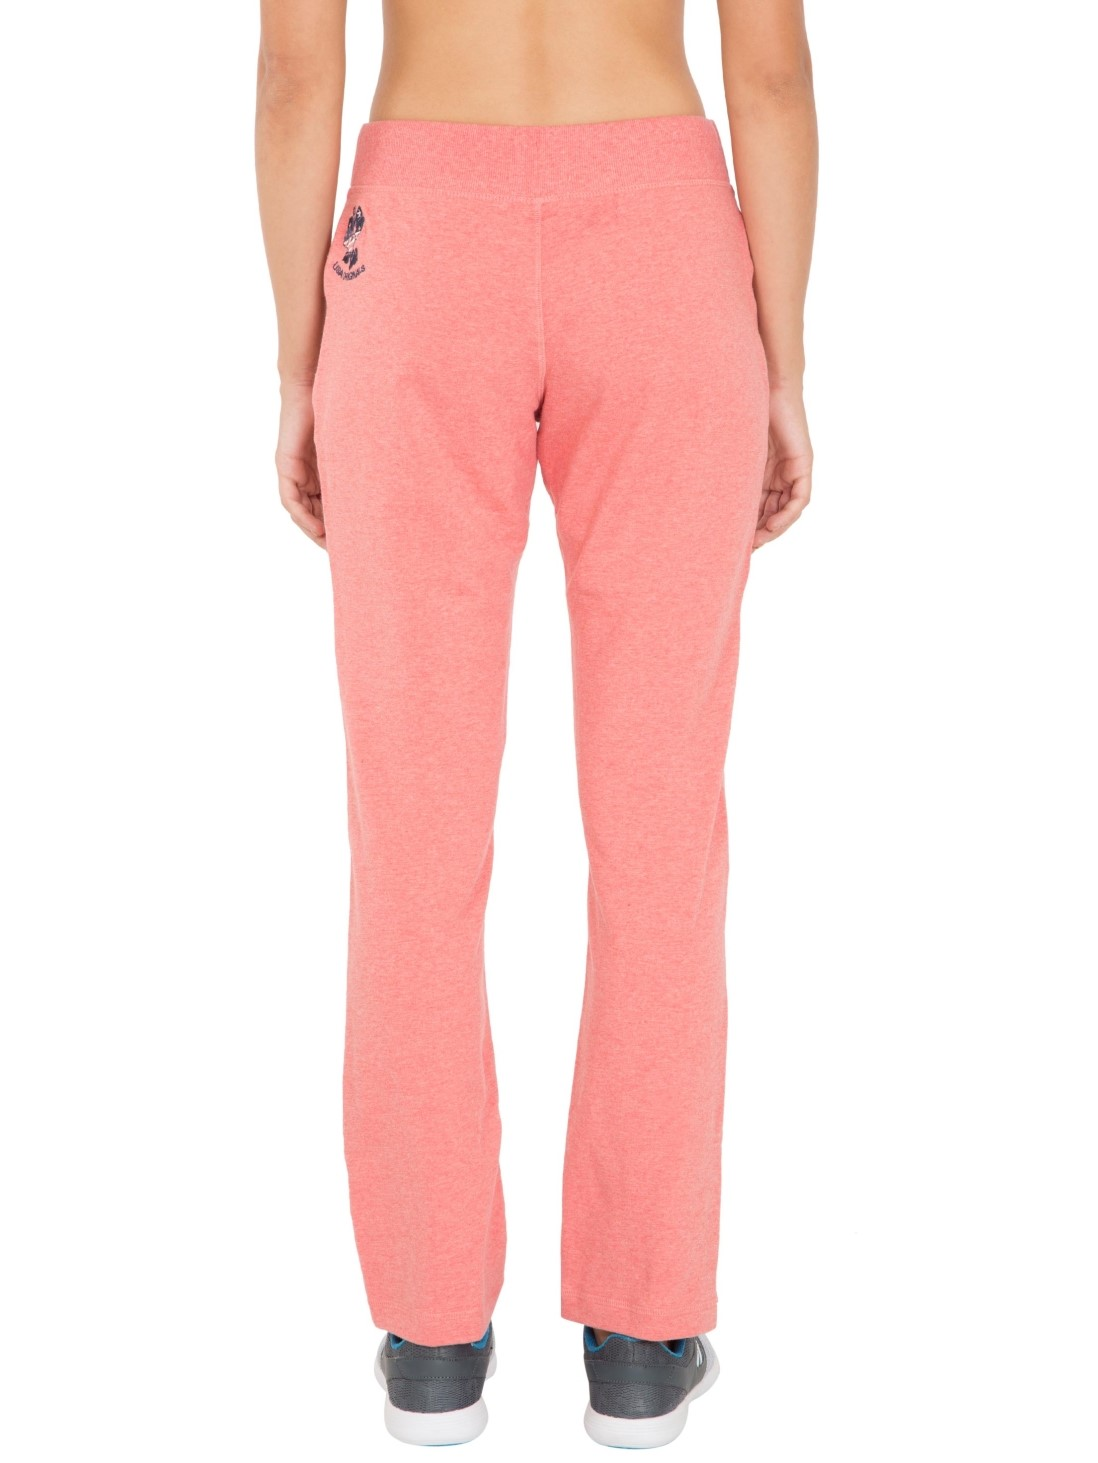 Jockey Womens Passion Red Melange Slim Fit Track Pant (S,Passion Red Melange)